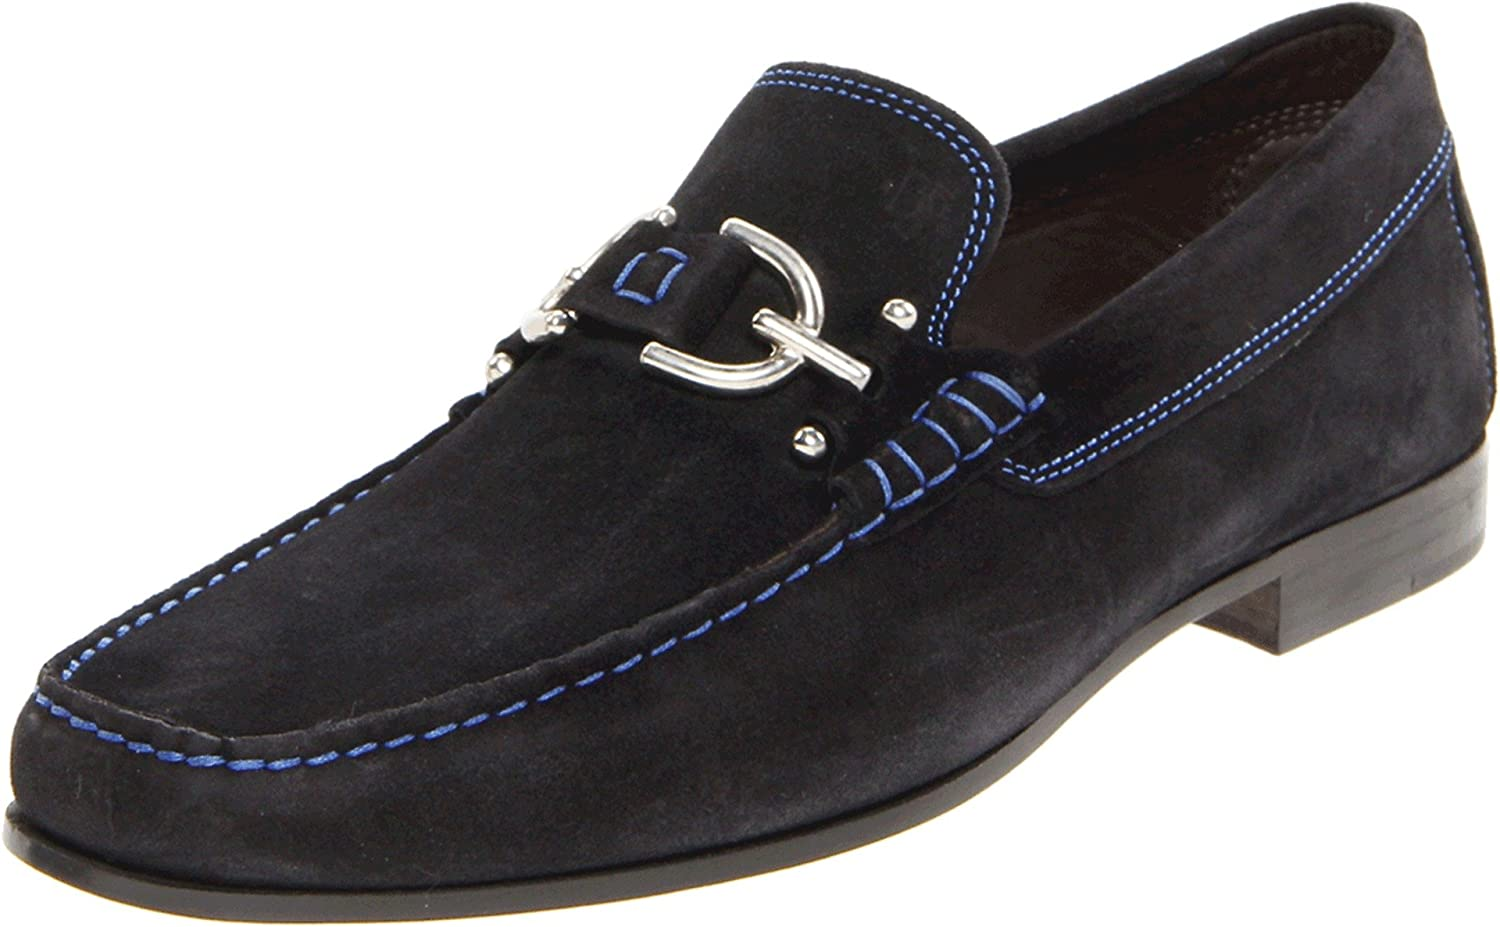 Be Friendly In Use Doland Pliner Mens Suede Sz 13 New Clothing, Shoes & Accessories